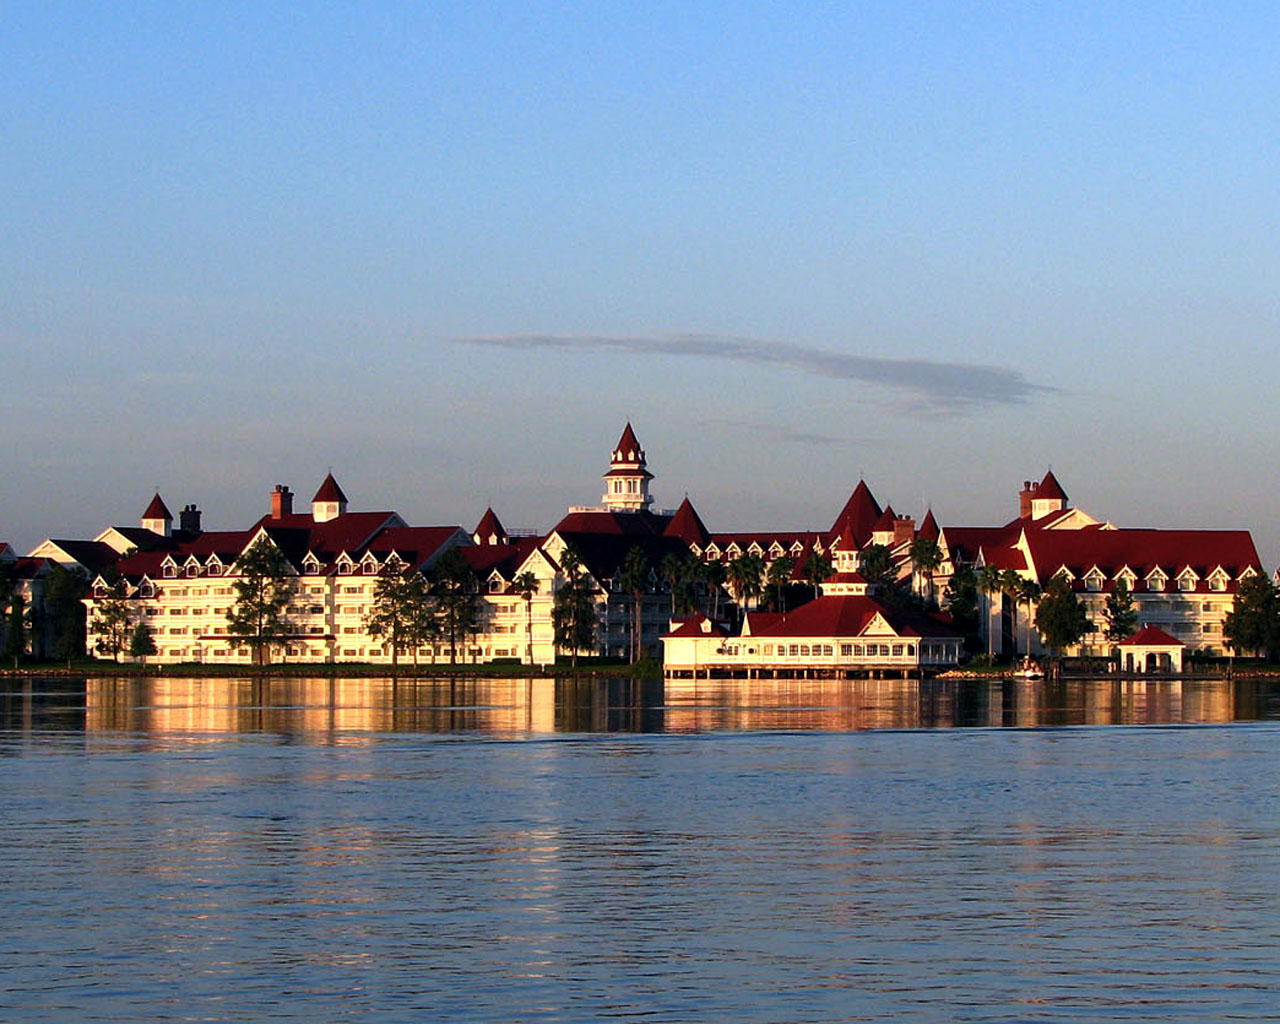 Grand floridian resort view from magic kingdom